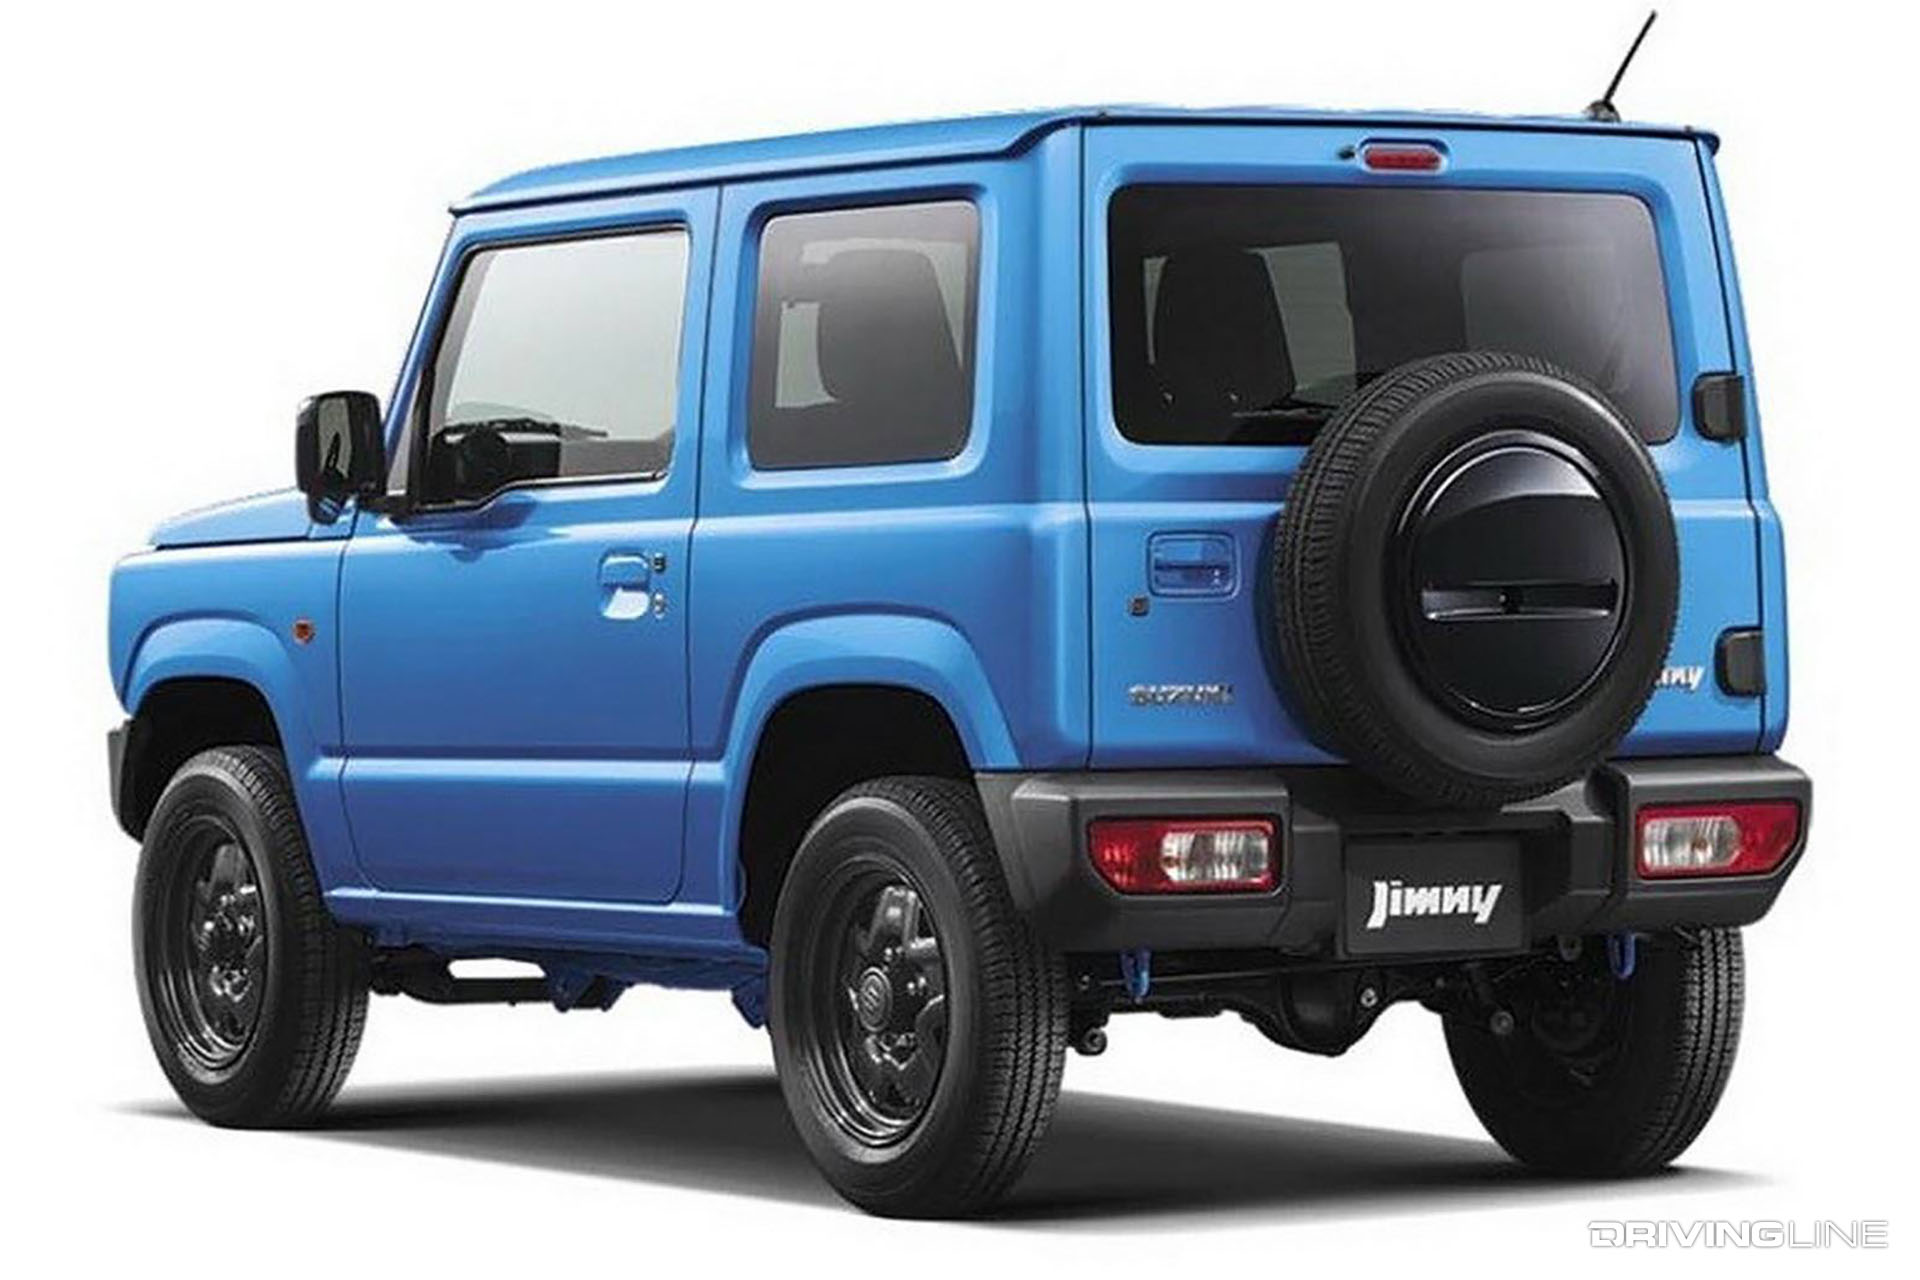 2019 suzuki jimny the awesome pocket 4x4 we can 39 t have. Black Bedroom Furniture Sets. Home Design Ideas